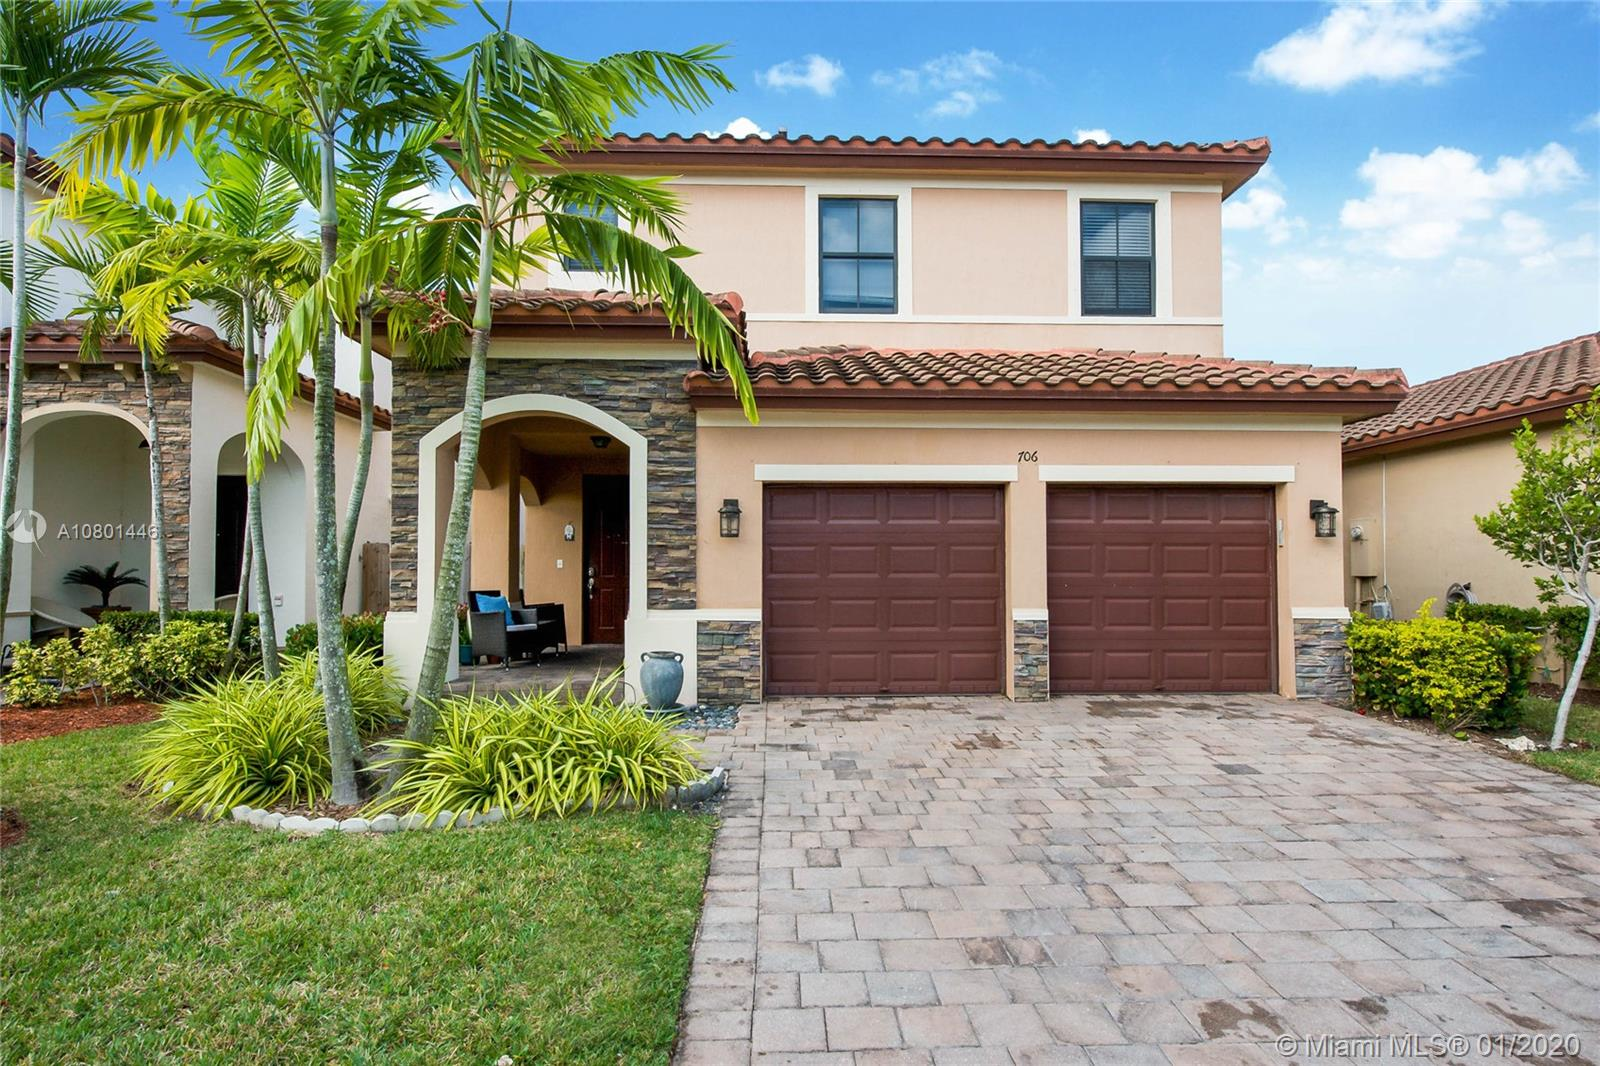 706 SE 34th Ave, Homestead, FL 33033 - Homestead, FL real estate listing